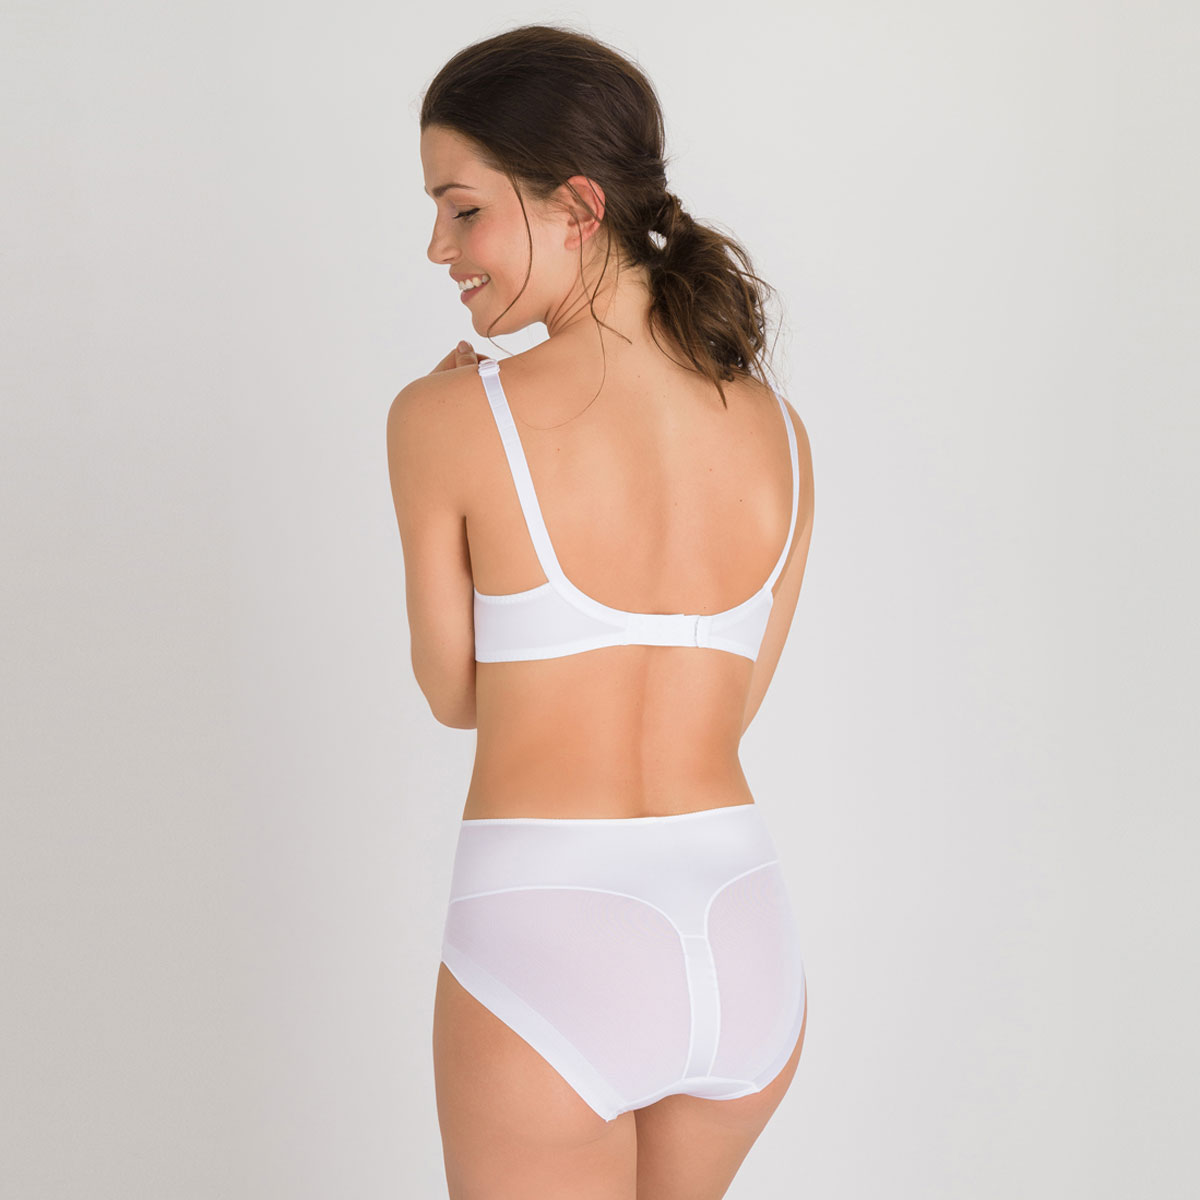 Soutien-gorge sans armatures blanc  - Perfect Silhouette-PLAYTEX